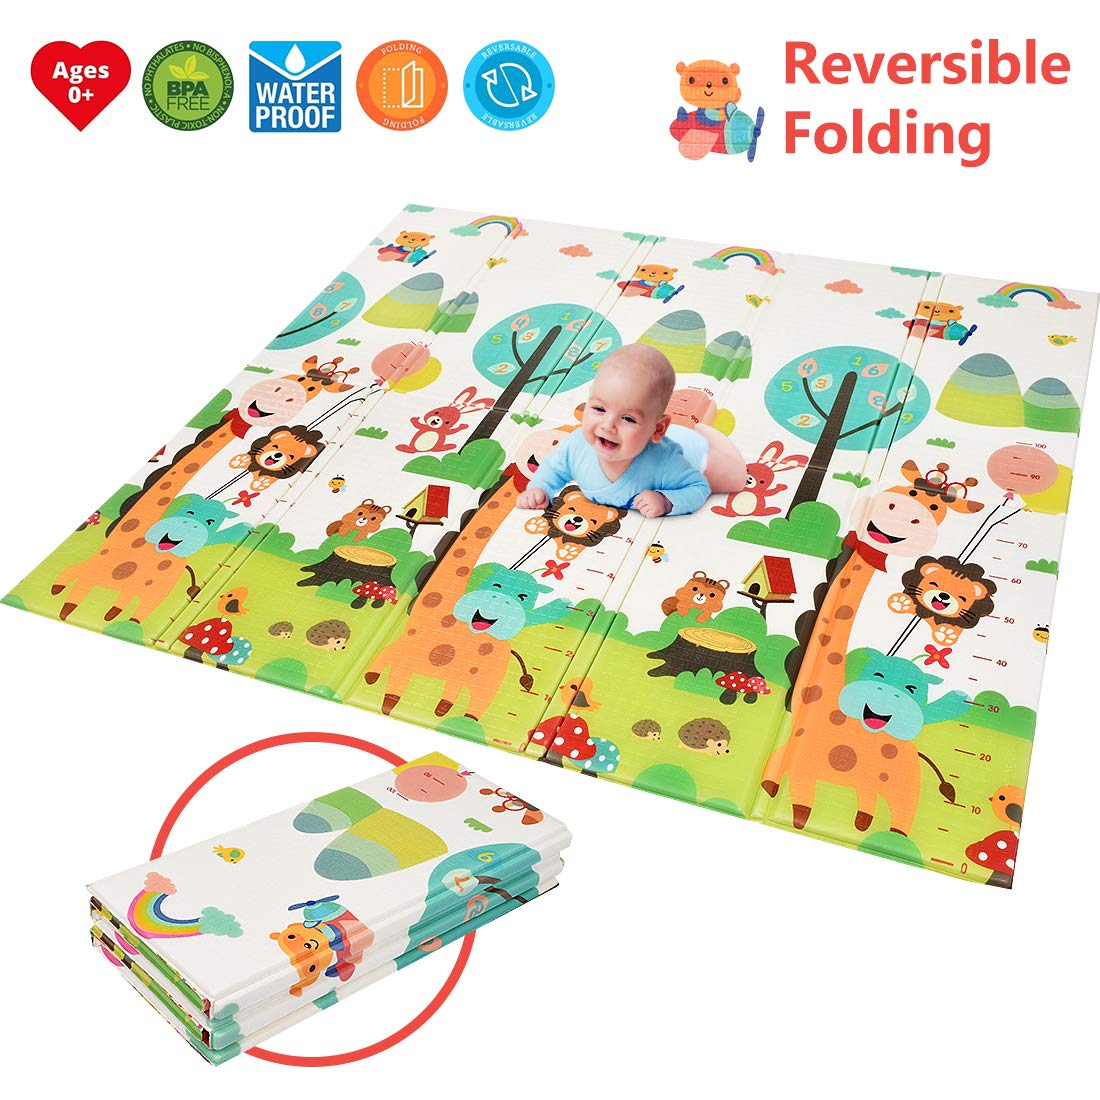 """【Easy to Clean Fold Up】BPA Free Non-Toxic Foam Folding Playmat 79/"""" x 71 0.6 Thick Extra Large Reversible Crawling Mat Portable Toddlers Kids Waterproof Non-Slip Activity Tummy Time Baby Play Mat"""